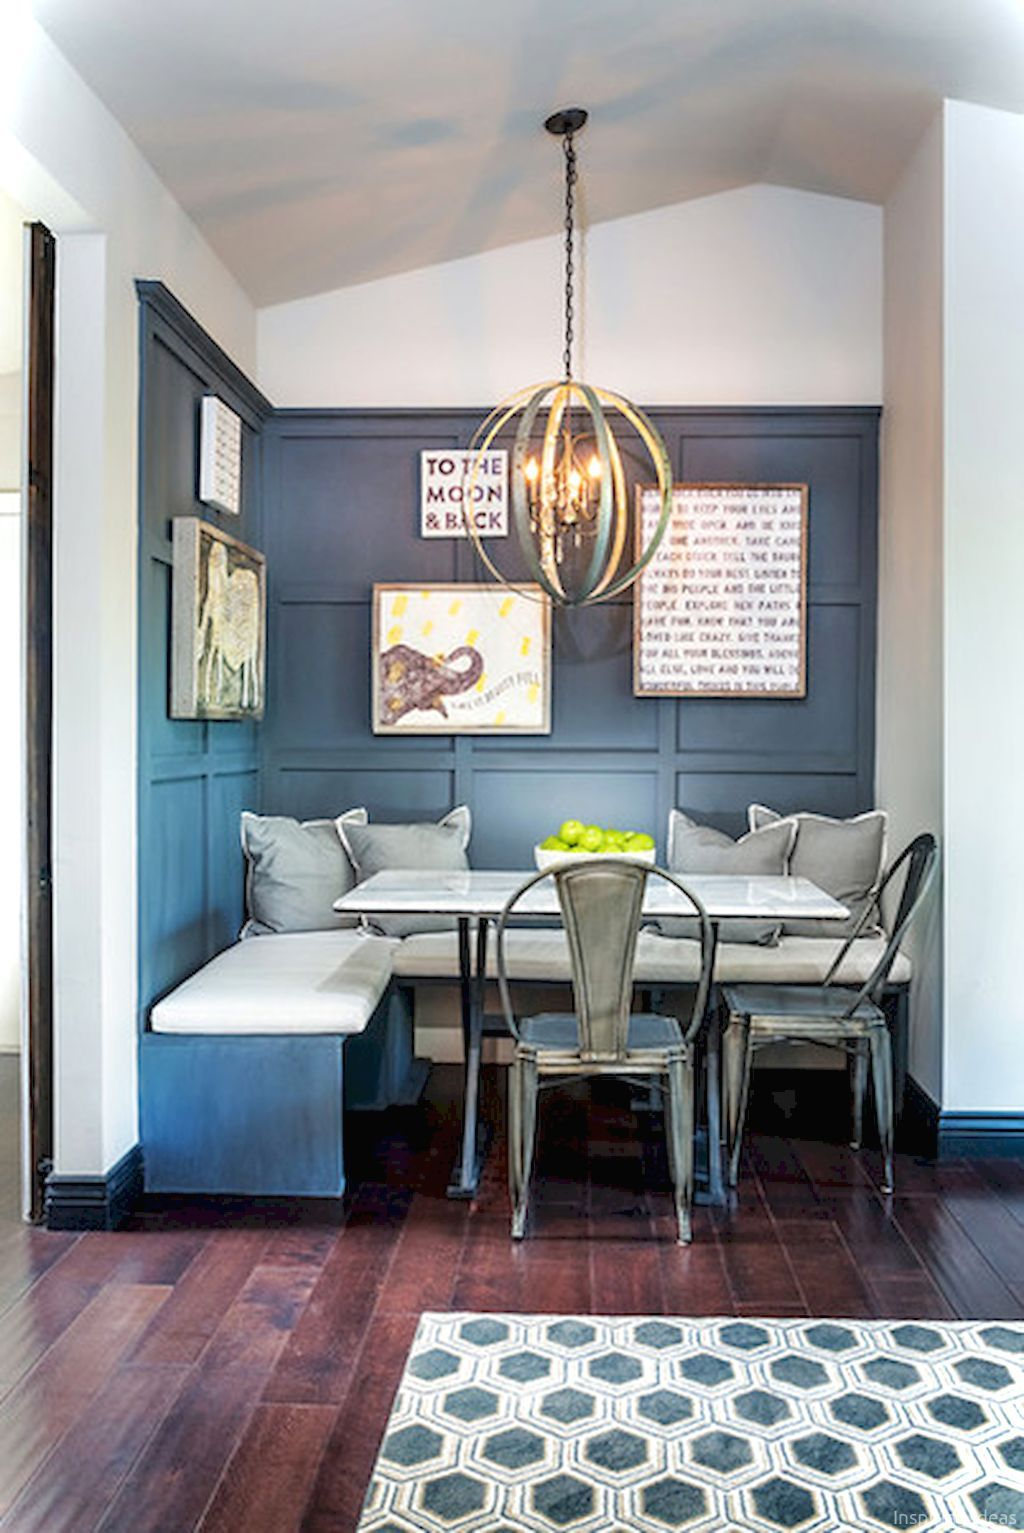 80 awesome banquette seating ideas for your kitchen dining room small dining room remodel on kitchen interior small space id=96507